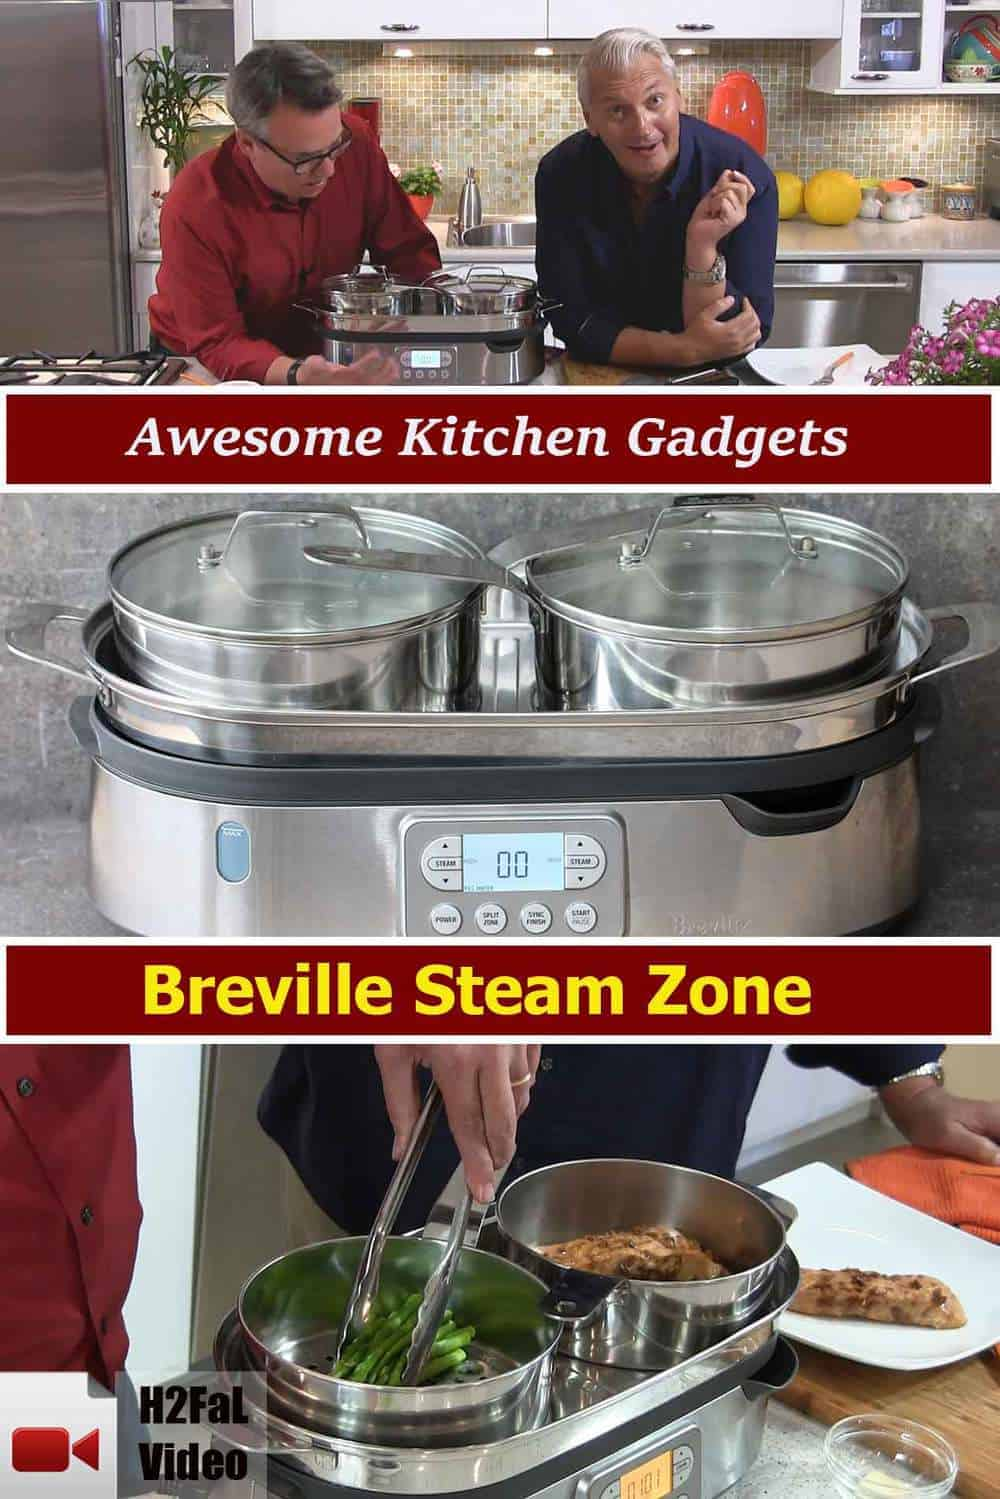 Awesome-Kitchen-Gadgets- Breville Steam Zone